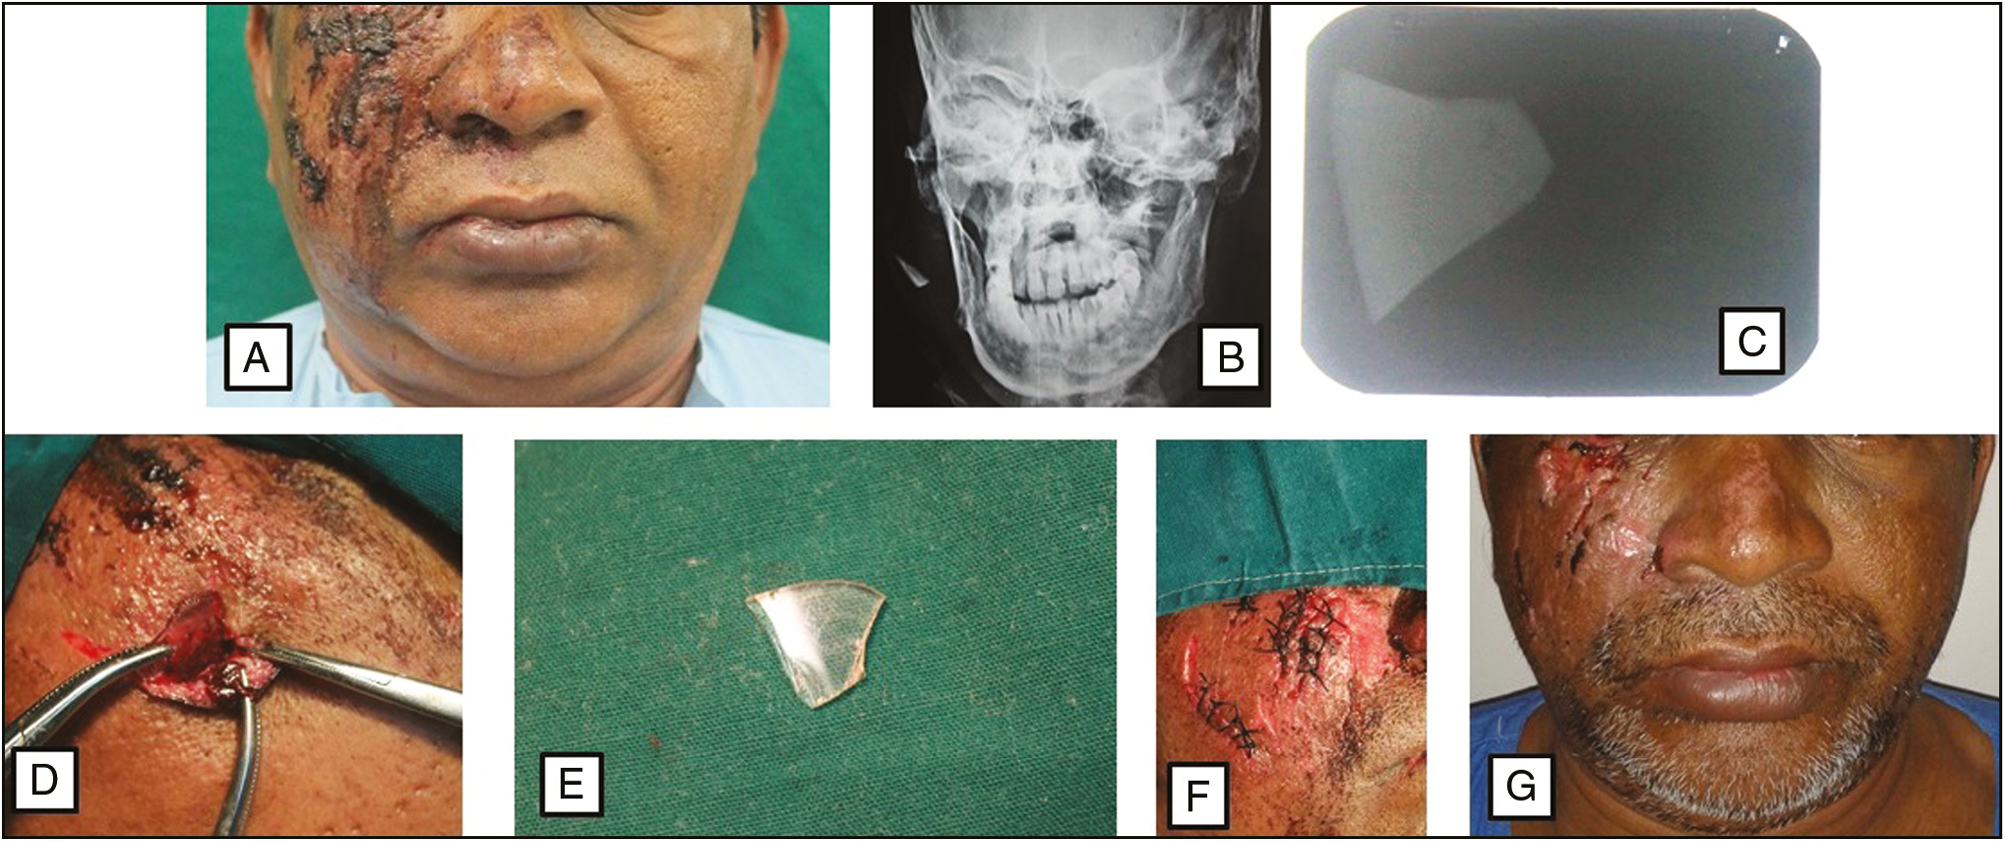 Figure 1: (A) Preoperative view. (B) PA mandible confirming presence of a radio-opaque object in the right ramus area of the mandible. (C) IOPA confirming presence of a radio-opaque object in the right ramus area of the mandible. (D) Retrieval of the embedded foreign body through the existing wound. (E) Foreign body which turned out to be broken glass piece. (F) Closure. (G) One week follow up